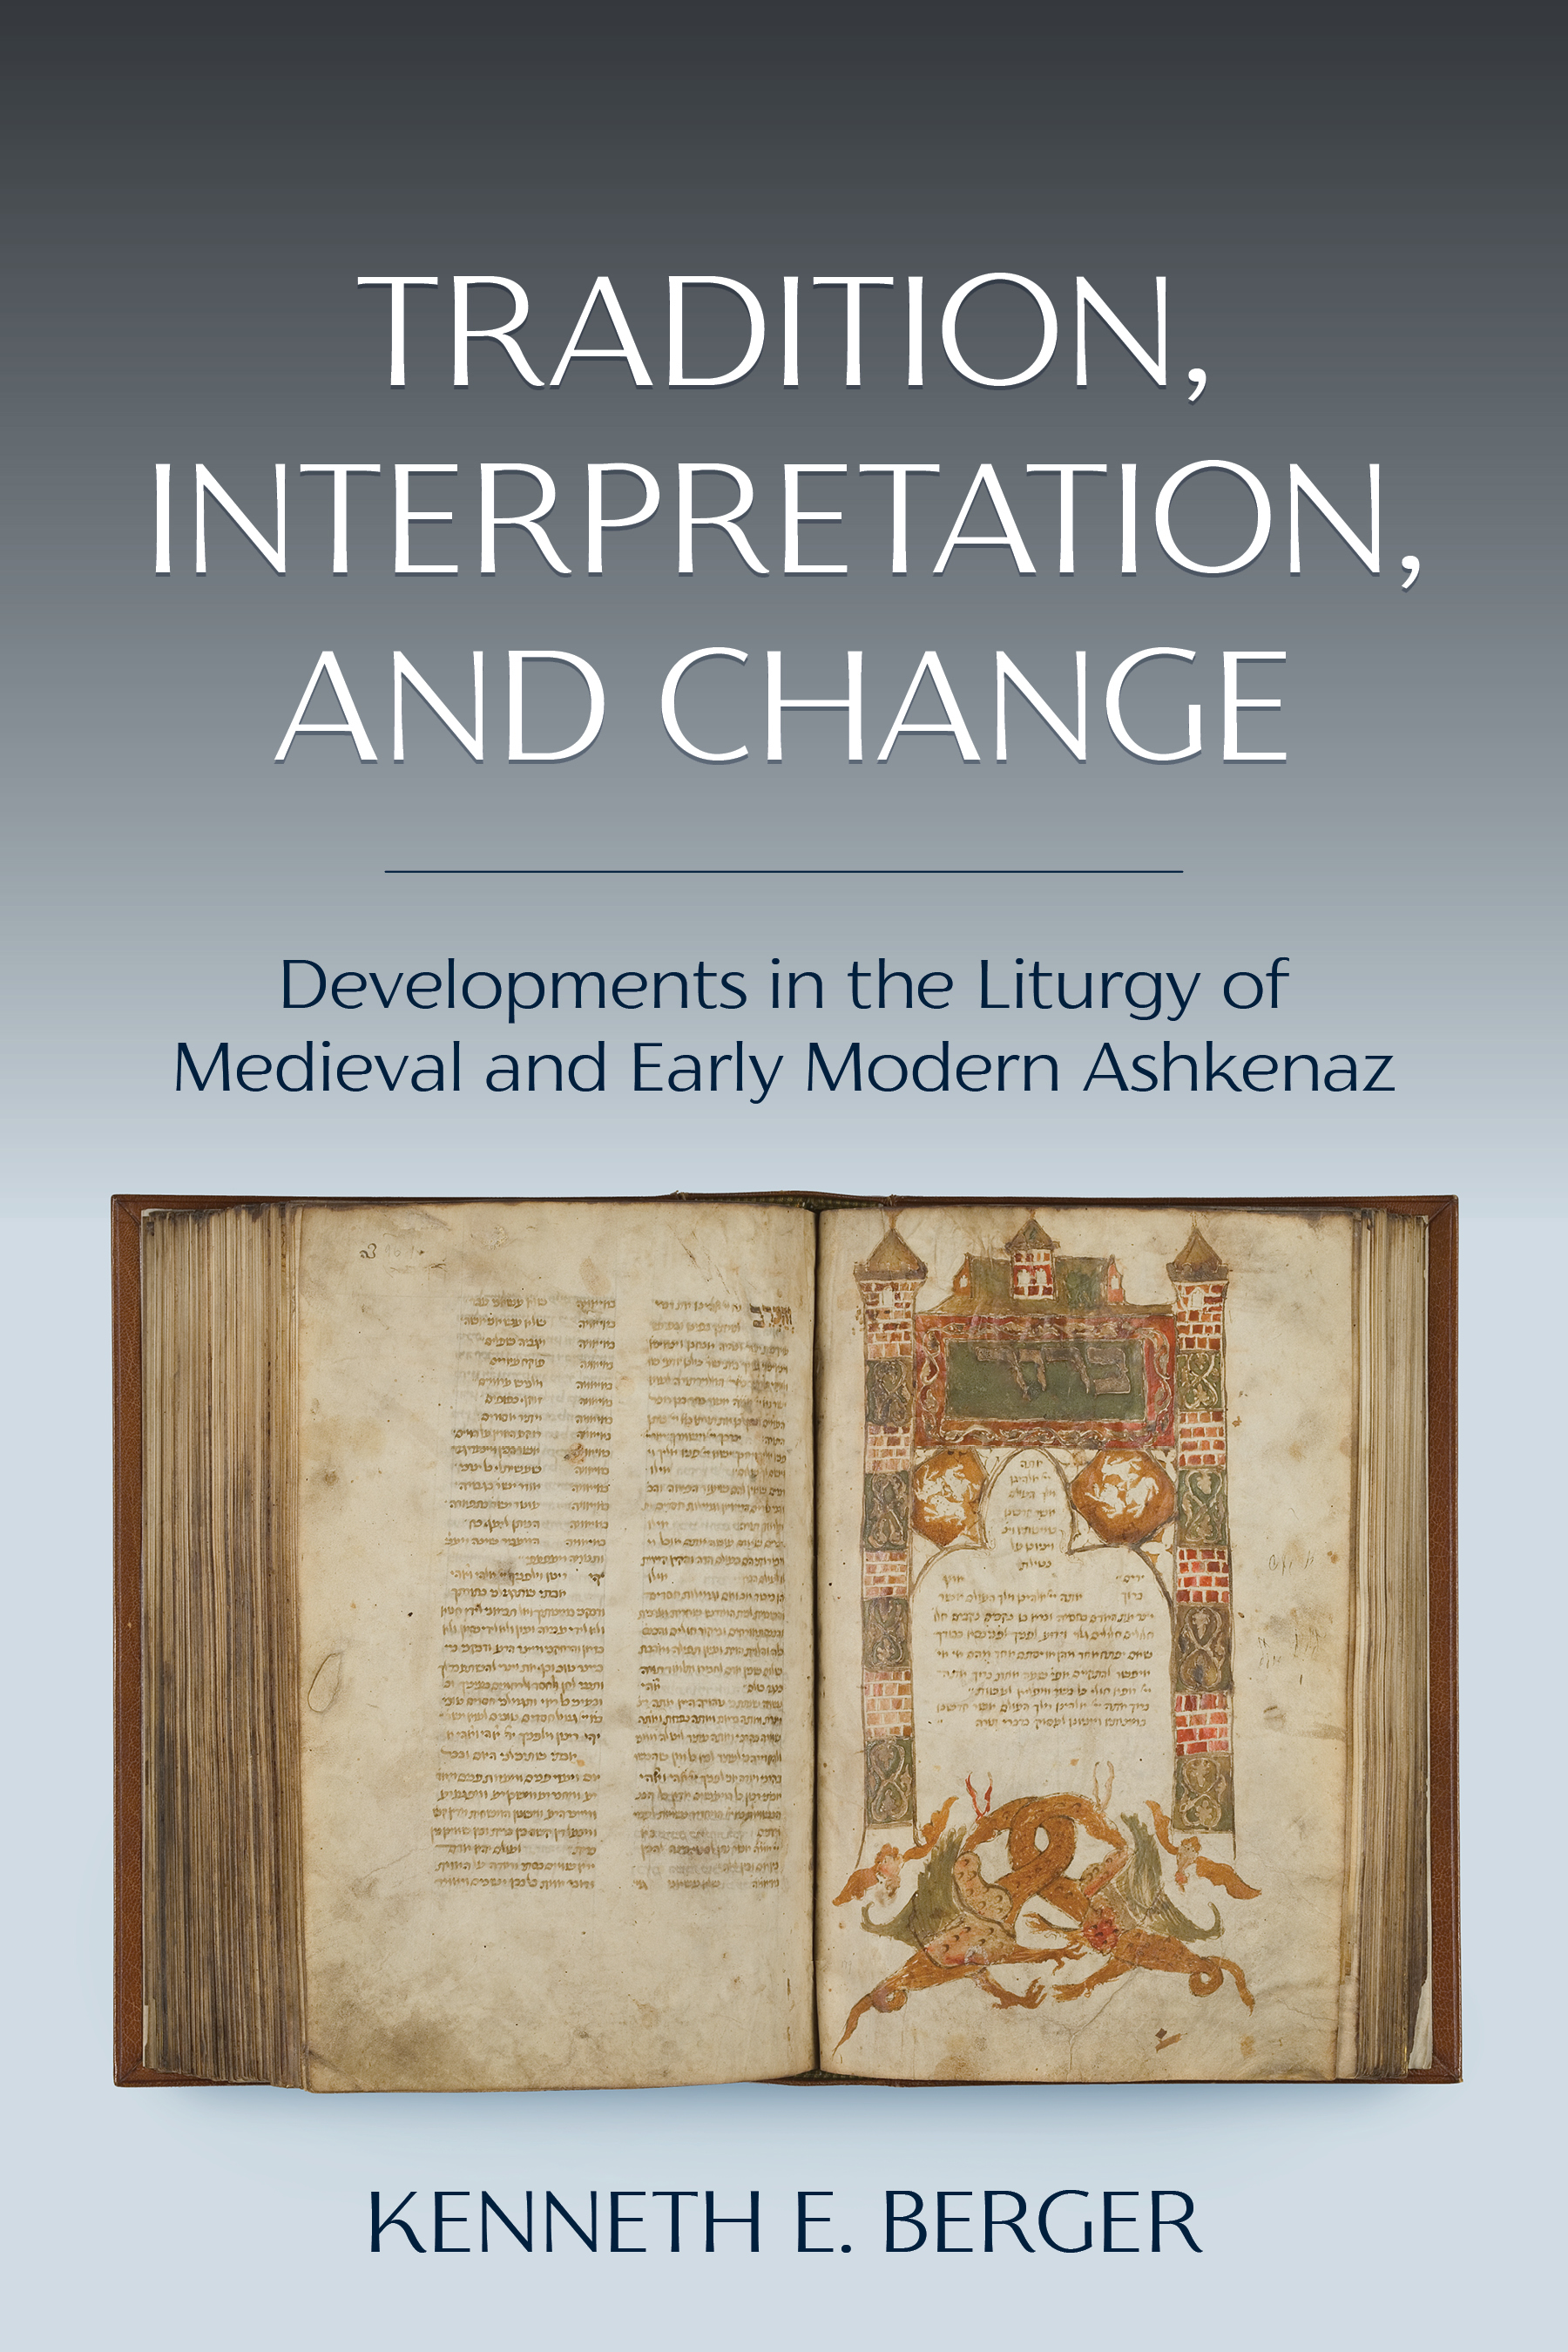 Tradition, Interpretation, and Change: Studies in the Liturgy of Medieval and Early Modern Ashkenaz